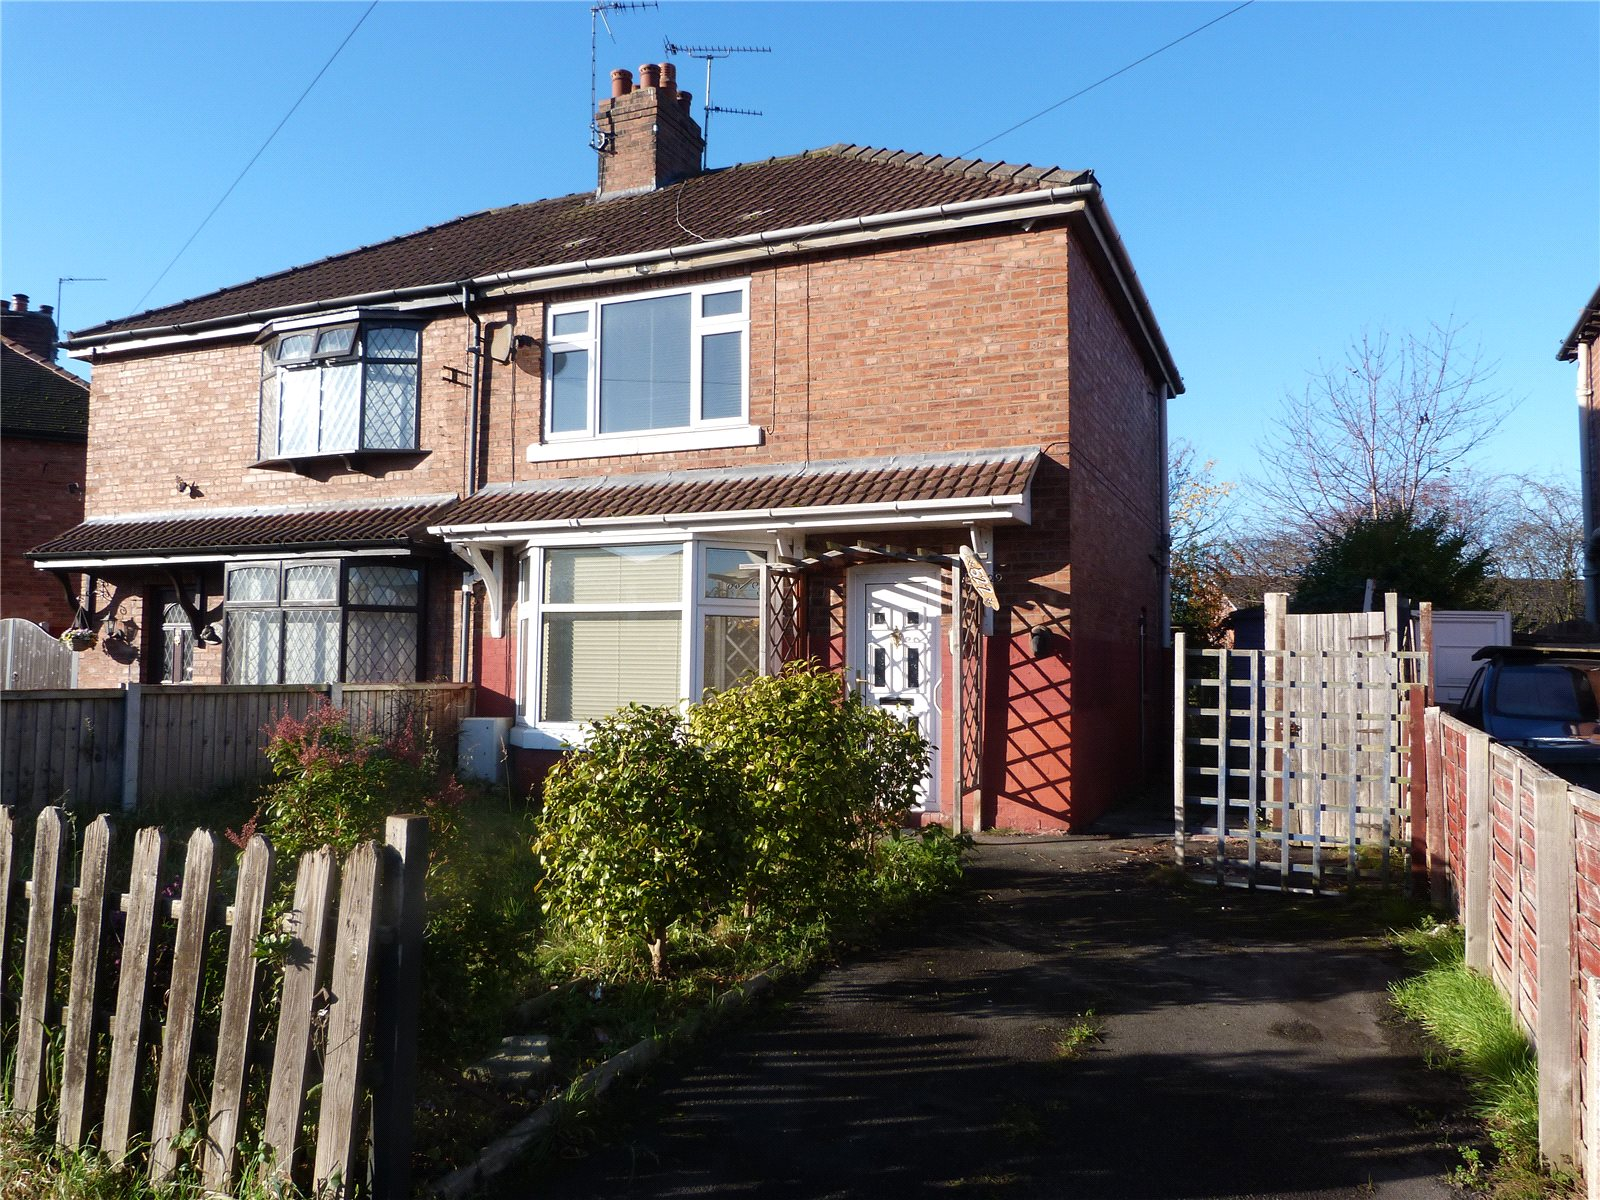 Whitegates crewe 2 bedroom house for sale in underwood for Underwood house for sale